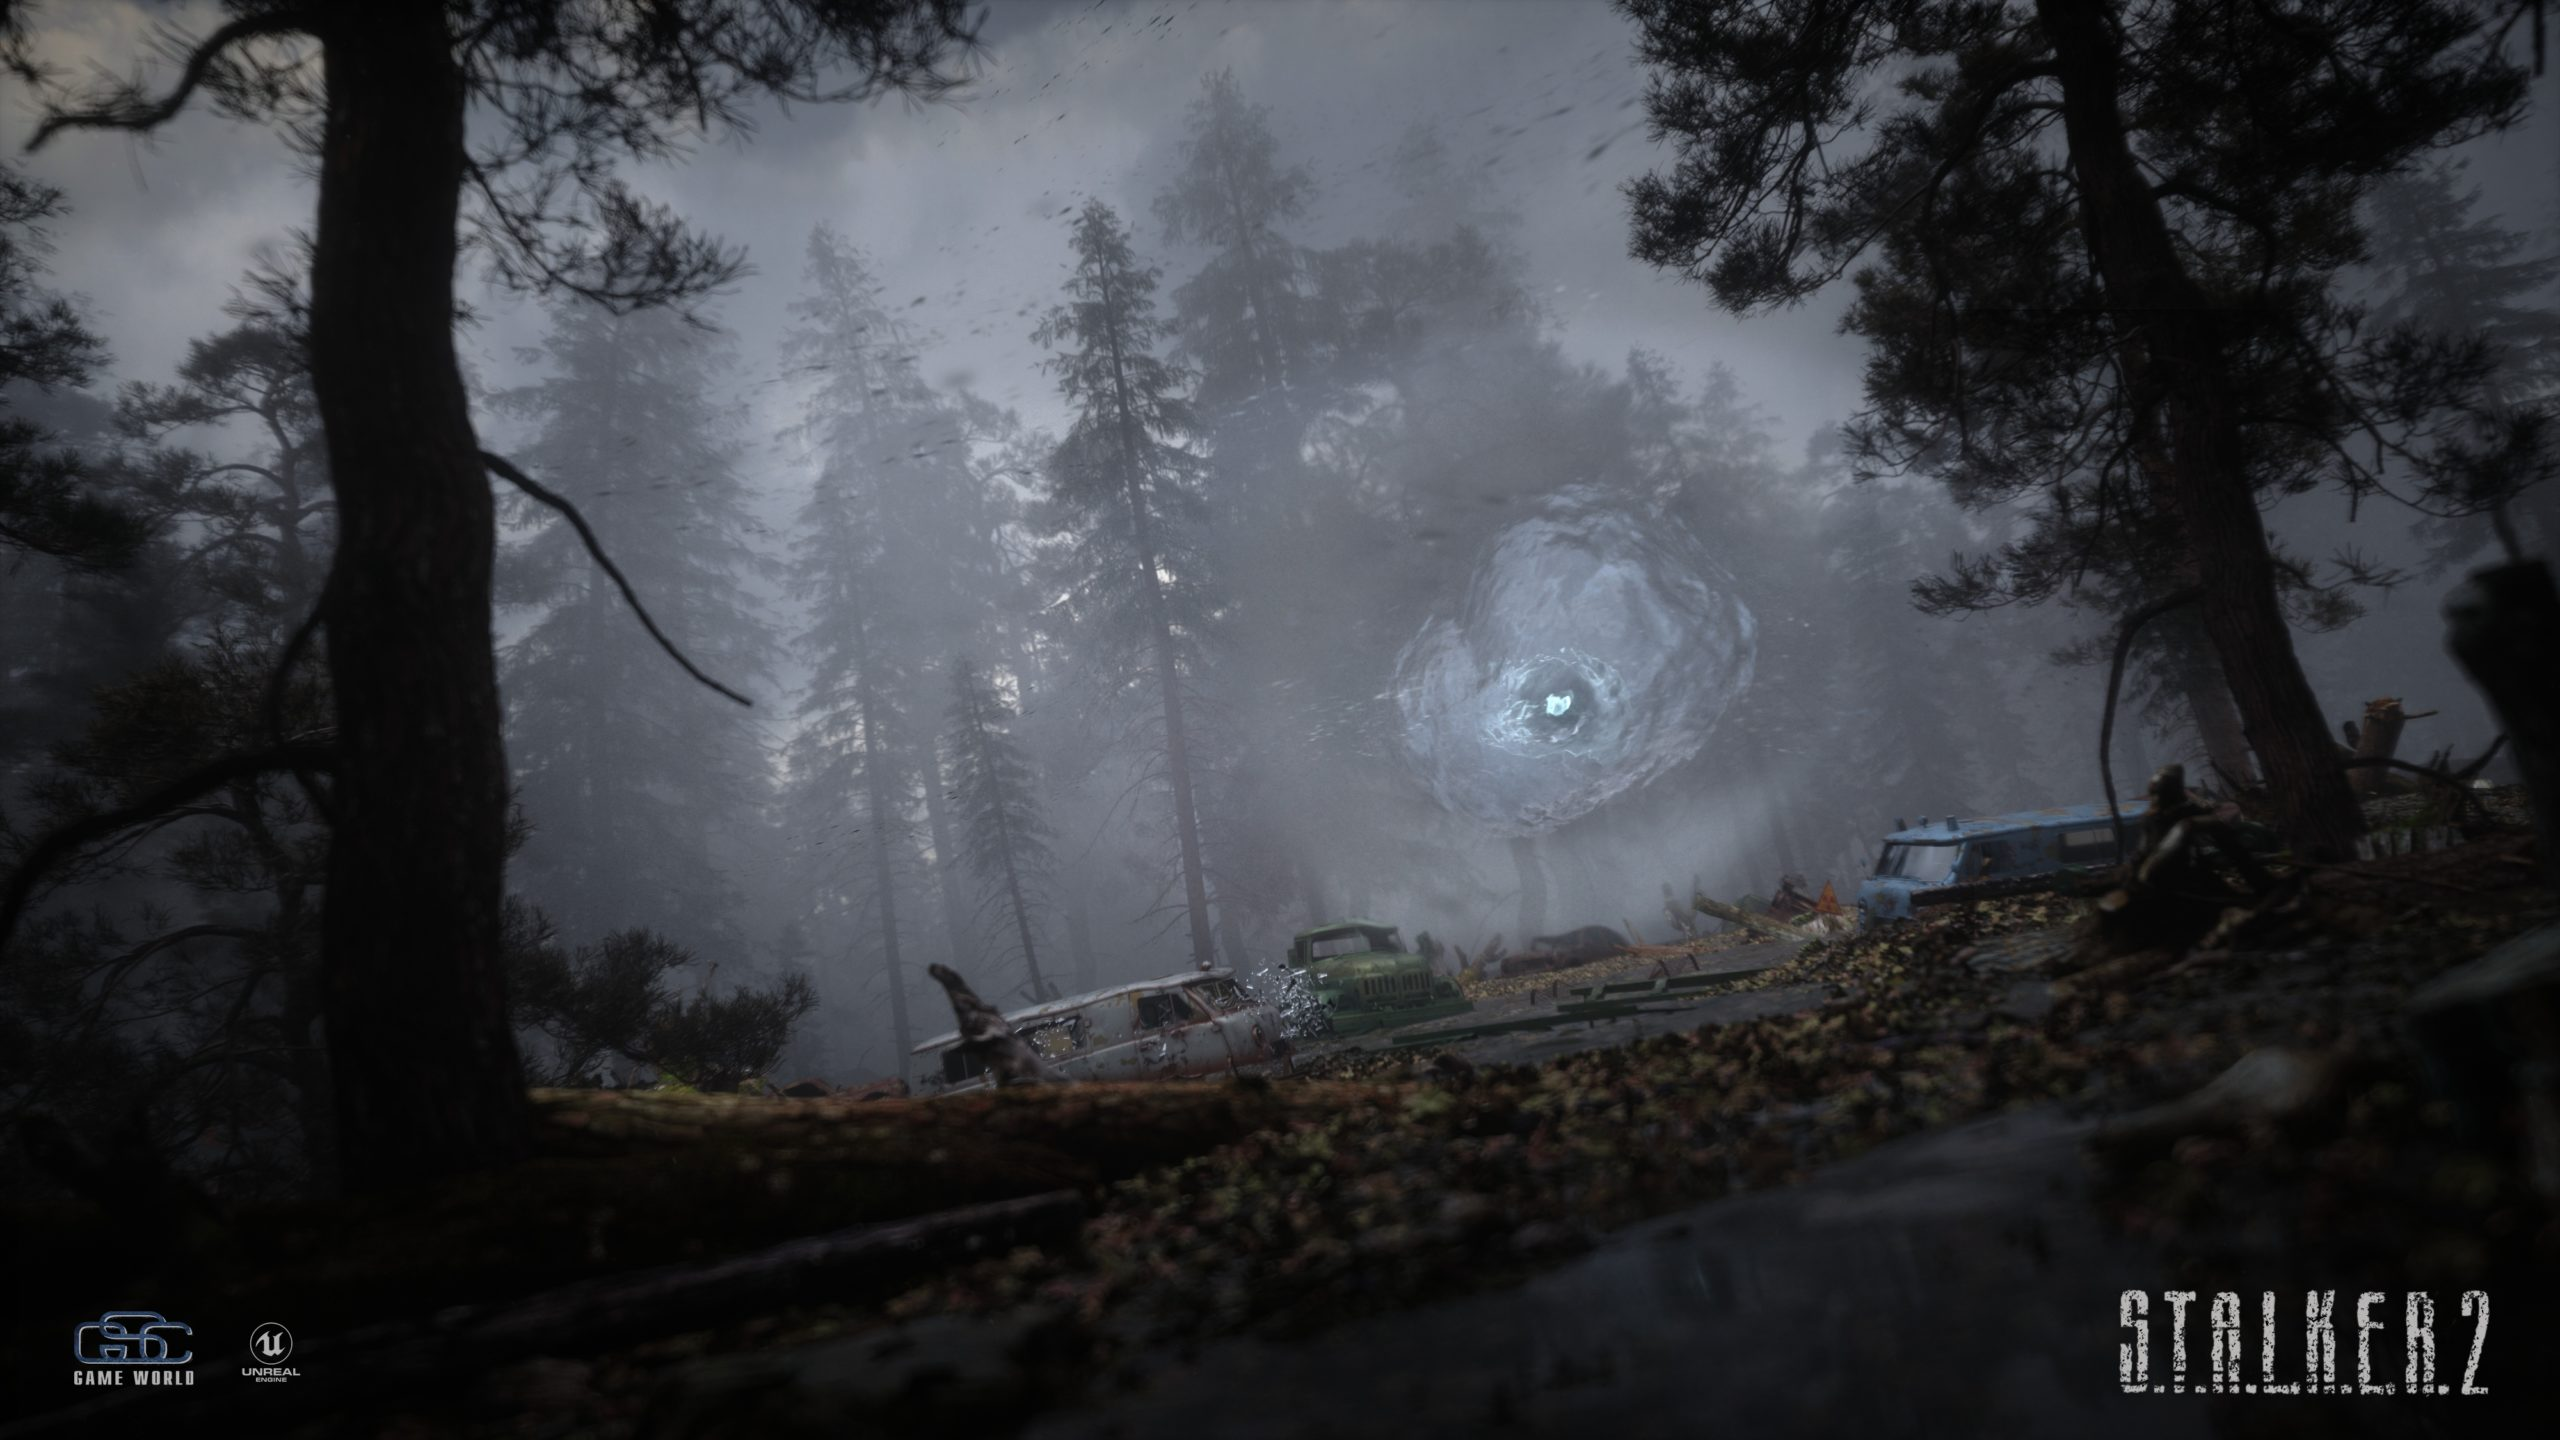 The First Image Of Long Awaited Stalker 2 Has Been Released Vgc